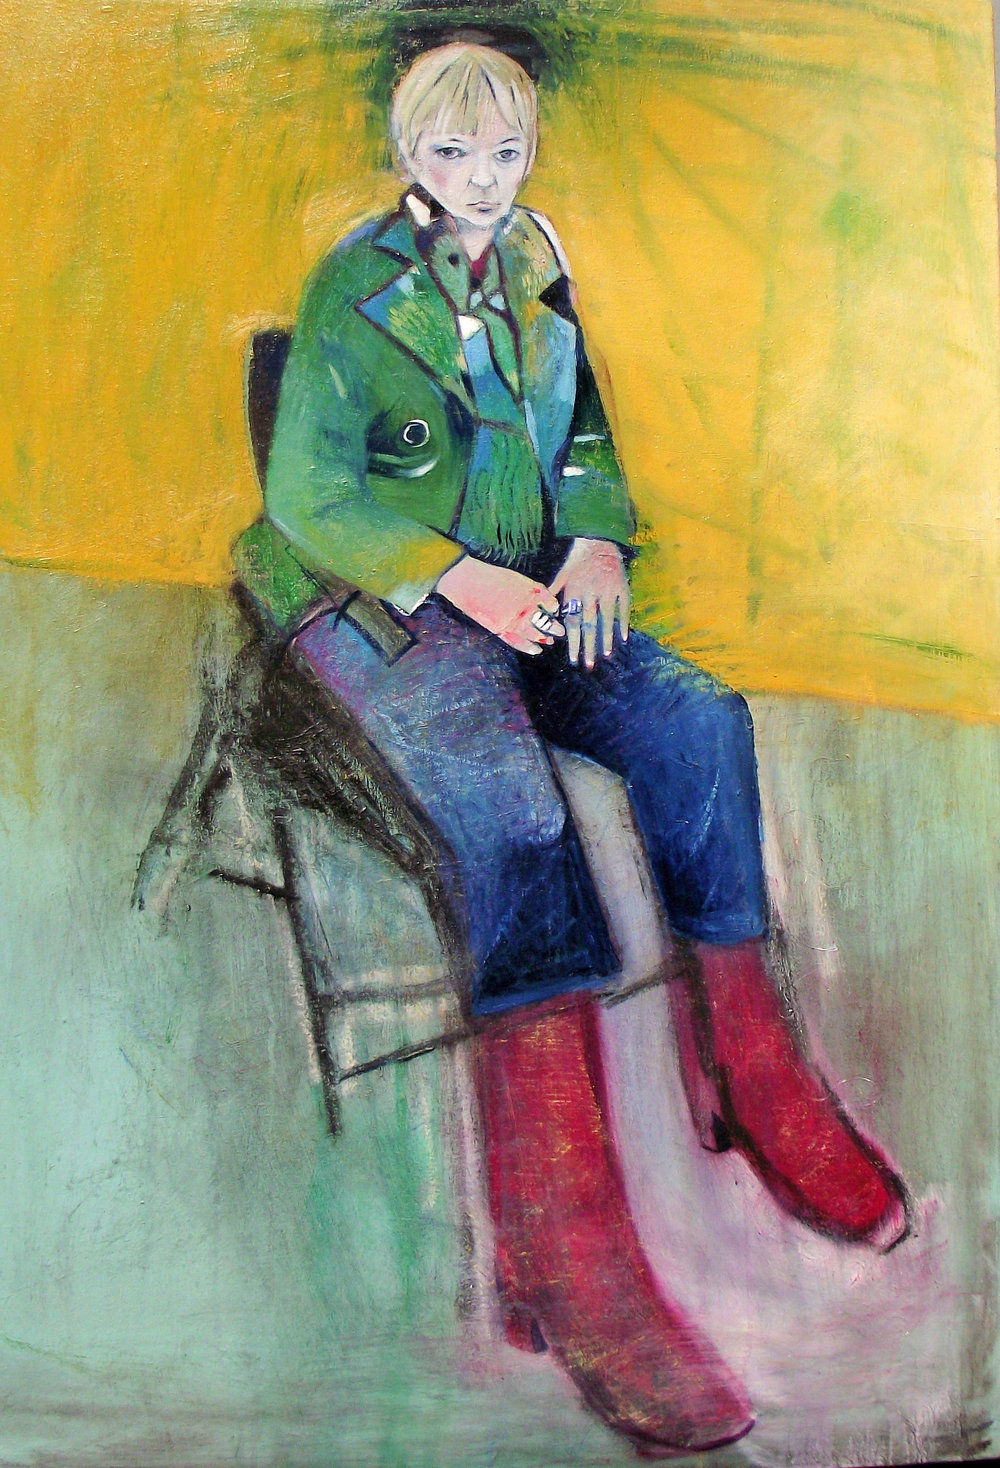 SPA 2017 Exhibition, Green Jacket,  66 x 96 cm, Oil bar/oil on canvas, £2,100